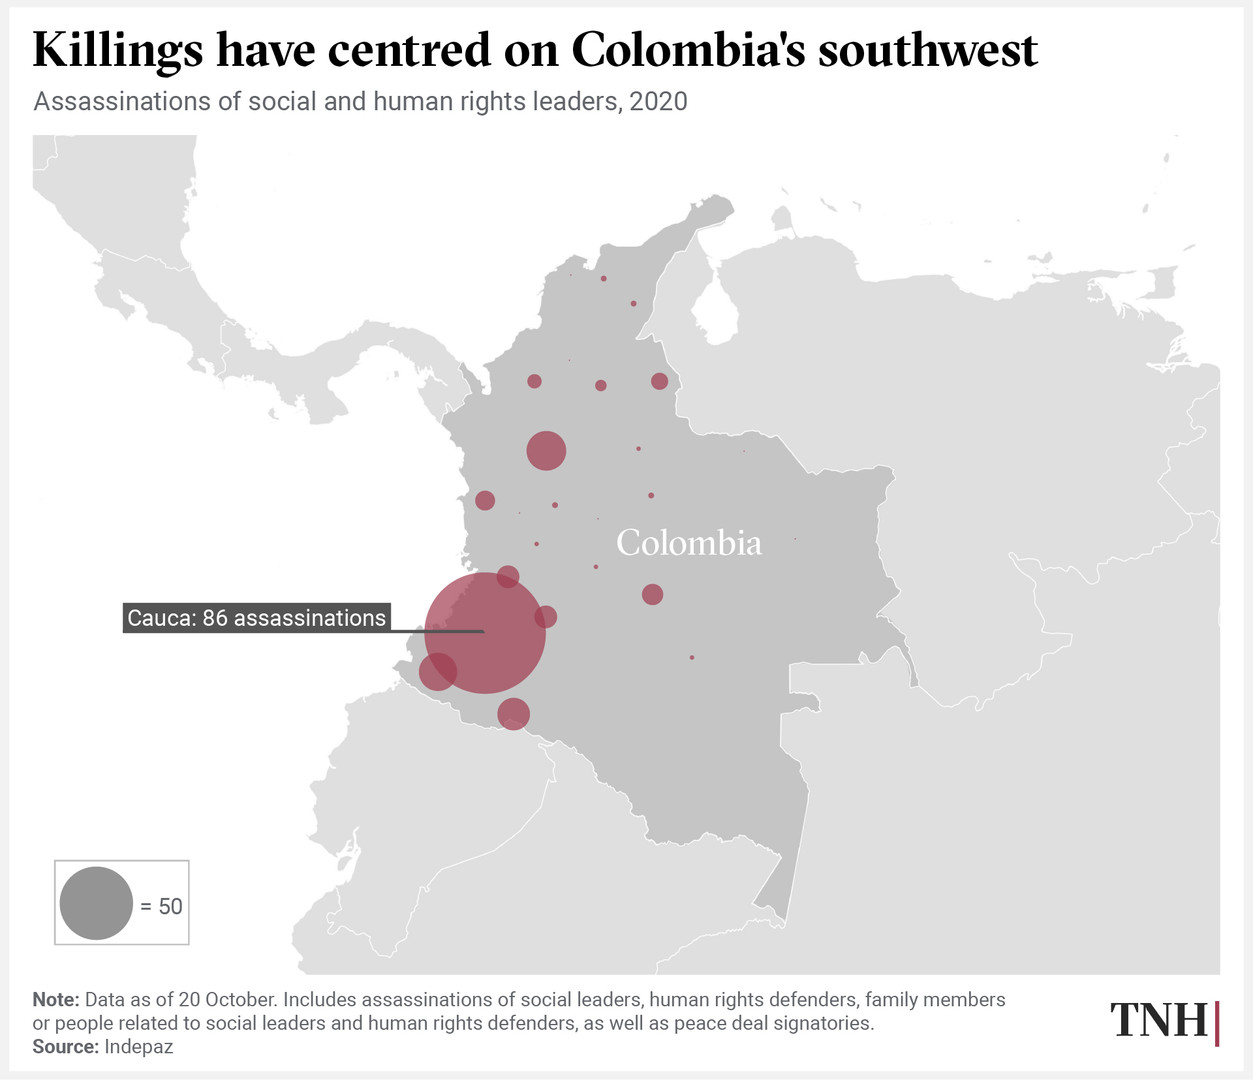 Killings have centred on Colombia's southwest